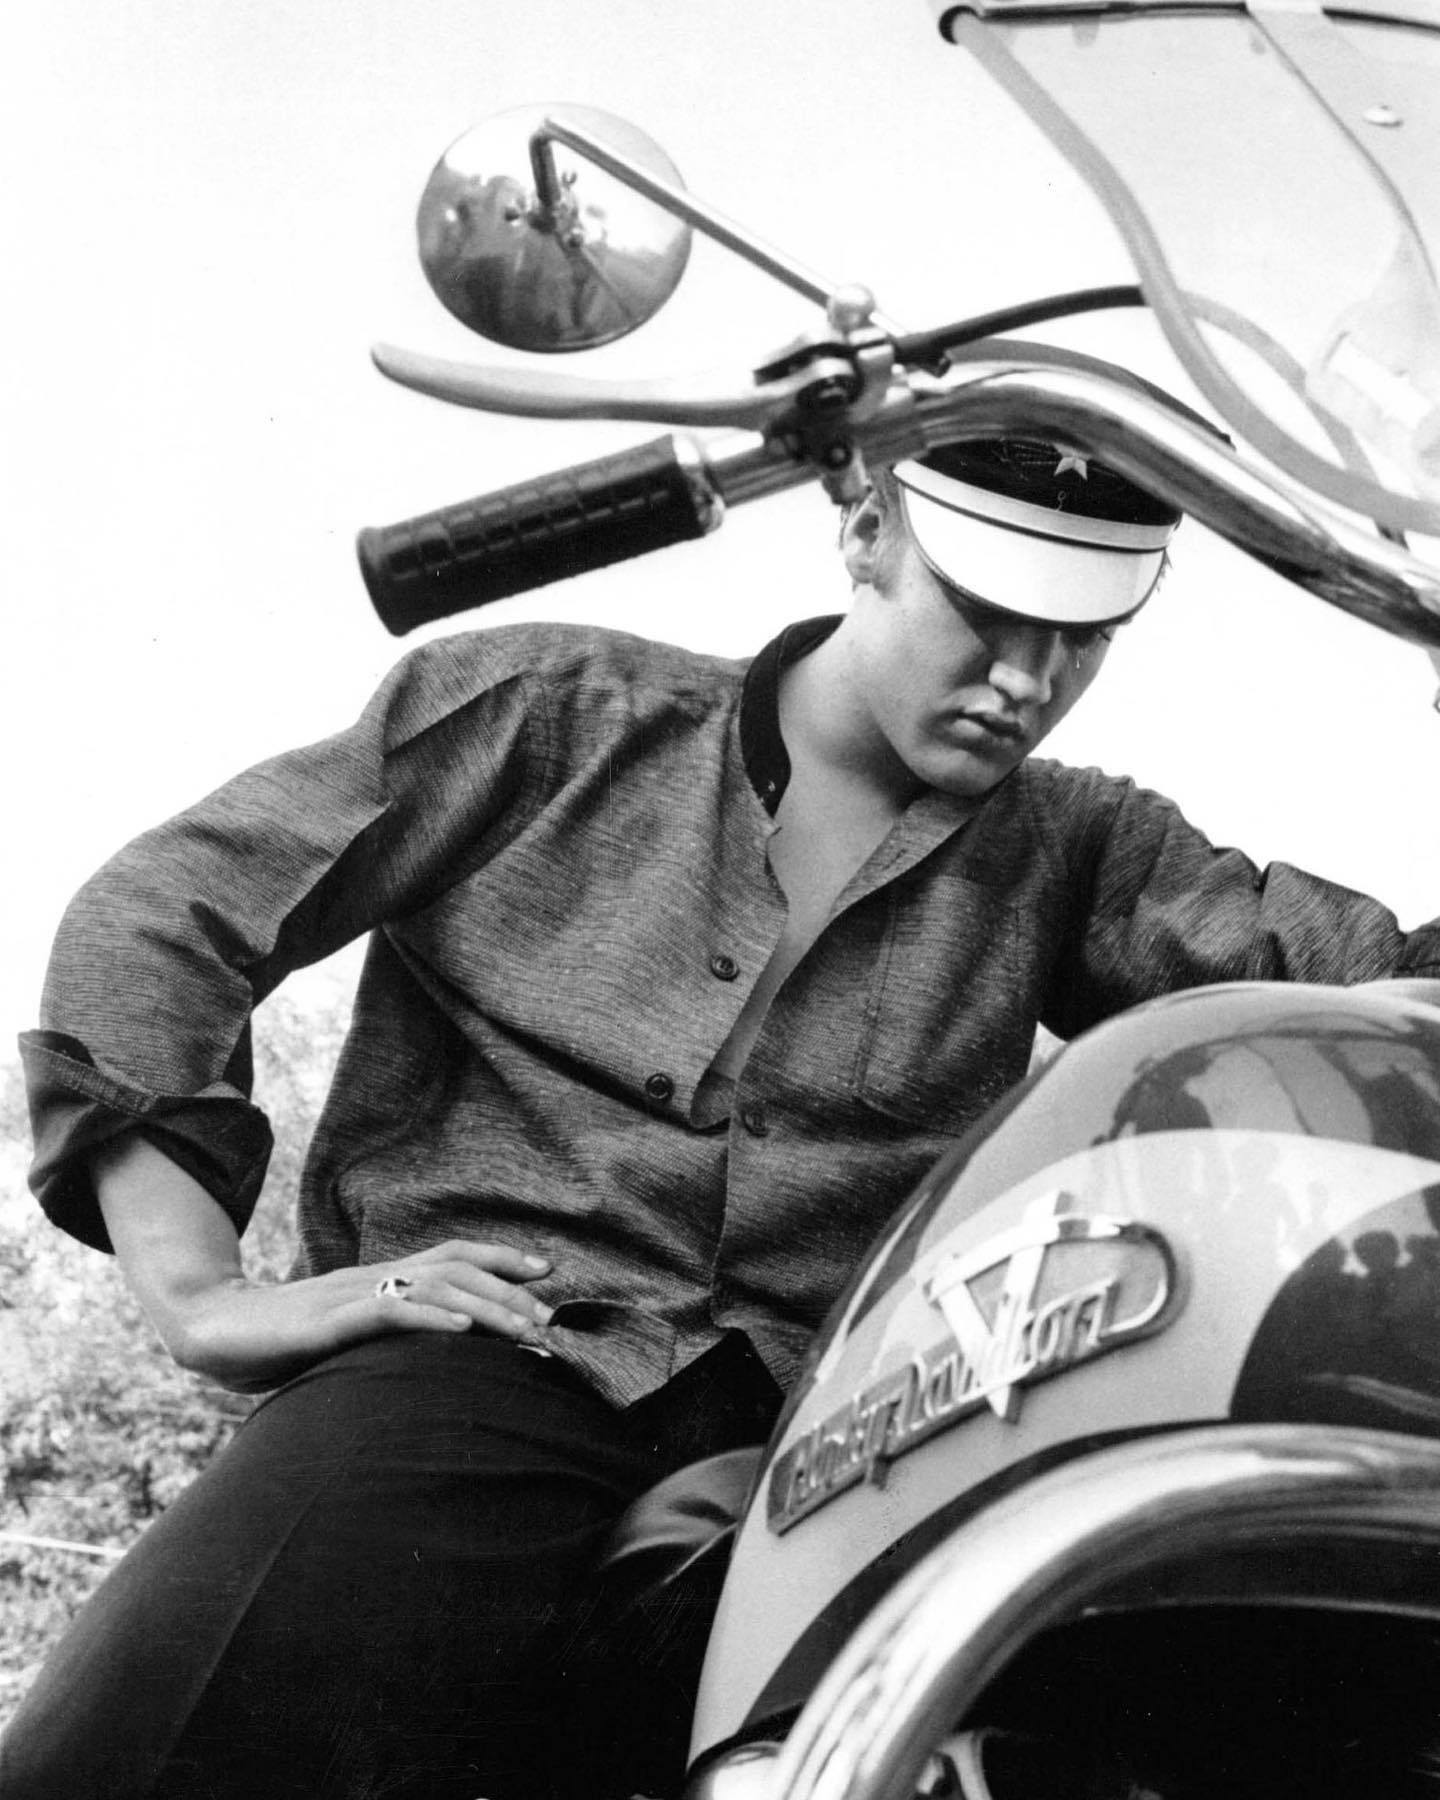 Today we are celebrating two MAJOR birthdays!! #Onthisday in 1935, rock and roll legend Elvis (AKA the King) was born! Pictured here is Elvis on his Harley Davidson bike, wondering why it wouldn't start outside his Memphis home on July 4, 1956.   📷©️Alfred Wertheimer/MUUS Collection   David Bowie, who was born on this day in 1947, is pictured here at the 17th Grammy Awards at the Uris Theater in NYC on March 1, 1975.   📷©️Fred W. McDarrah/MUUS Collection   #happybirthdayelvis #happybirthdaybowie #davidbowie #bowie #elvis #elvispresley #theking #rockandroll #musicians #musician #photography #photographer #todayinhistory #nyc #newyorkcity #memphis #celebrities #celebrity #photoftheday #pictureoftheday #picoftheday #vintagephotography #fromthearchives #harleydavidson #motorcycle #muuscollection #art #blackandwhitephotography #documentaryphotography